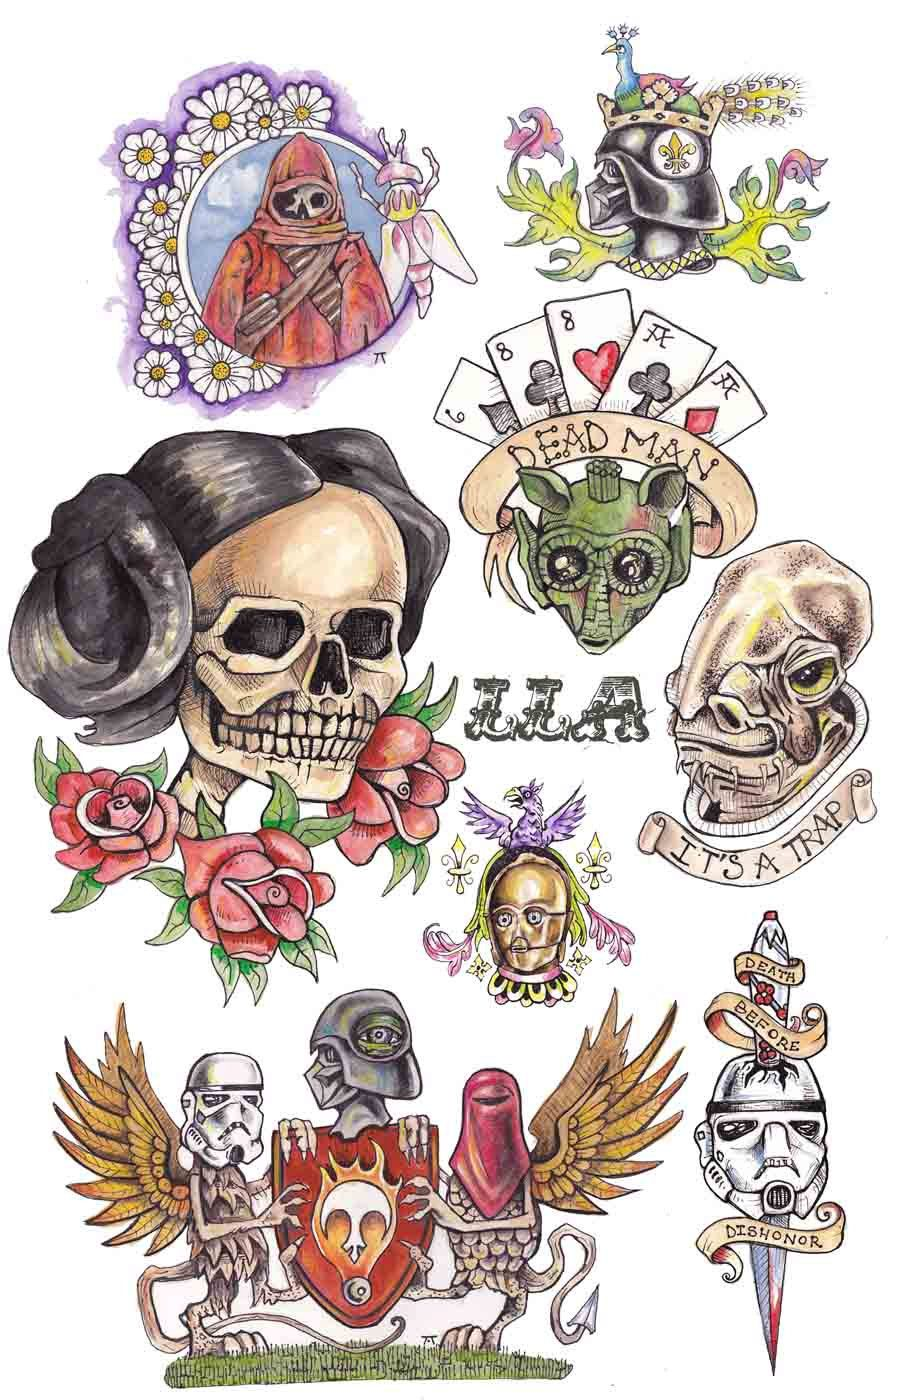 Star Wars Poster Tattoo Flash Page By Lc Lecamp On Etsy Star